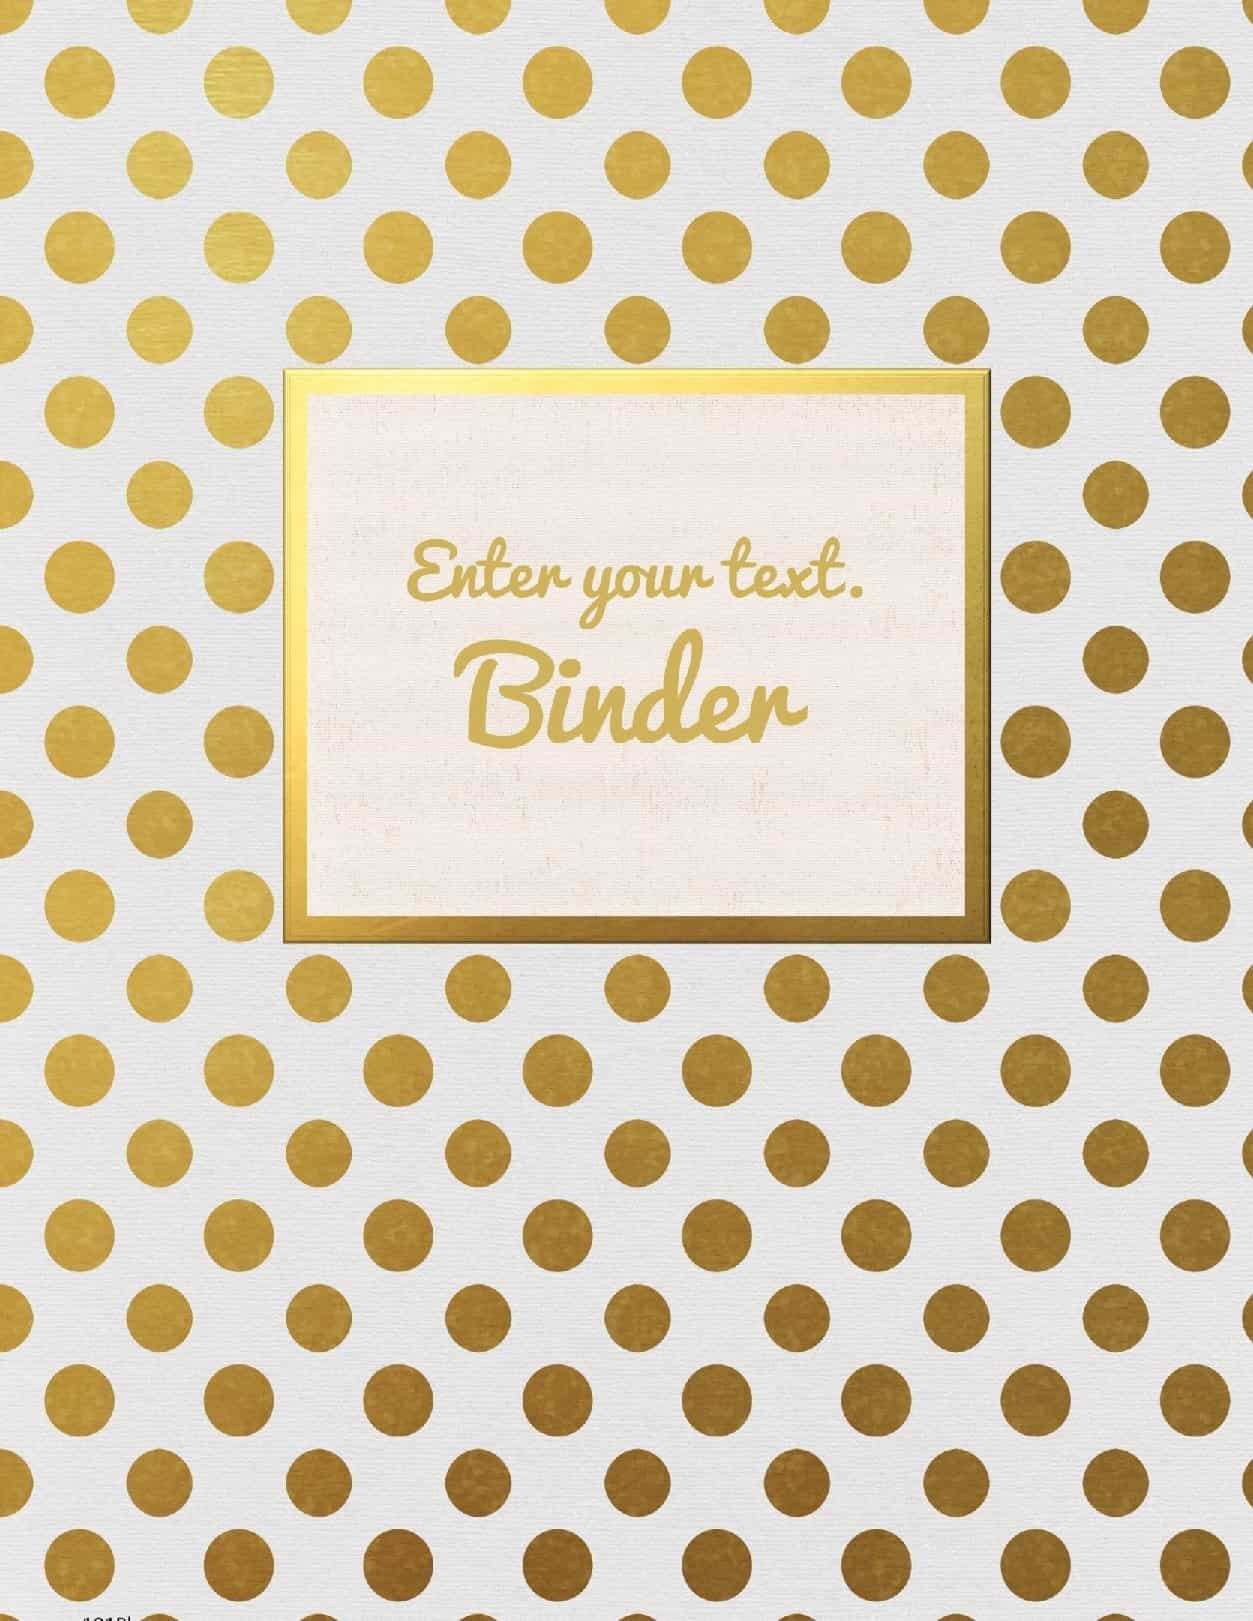 Free Binder Cover Templates   Customize Online & Print At Home   Free! - Free Printable Binder Covers And Spines